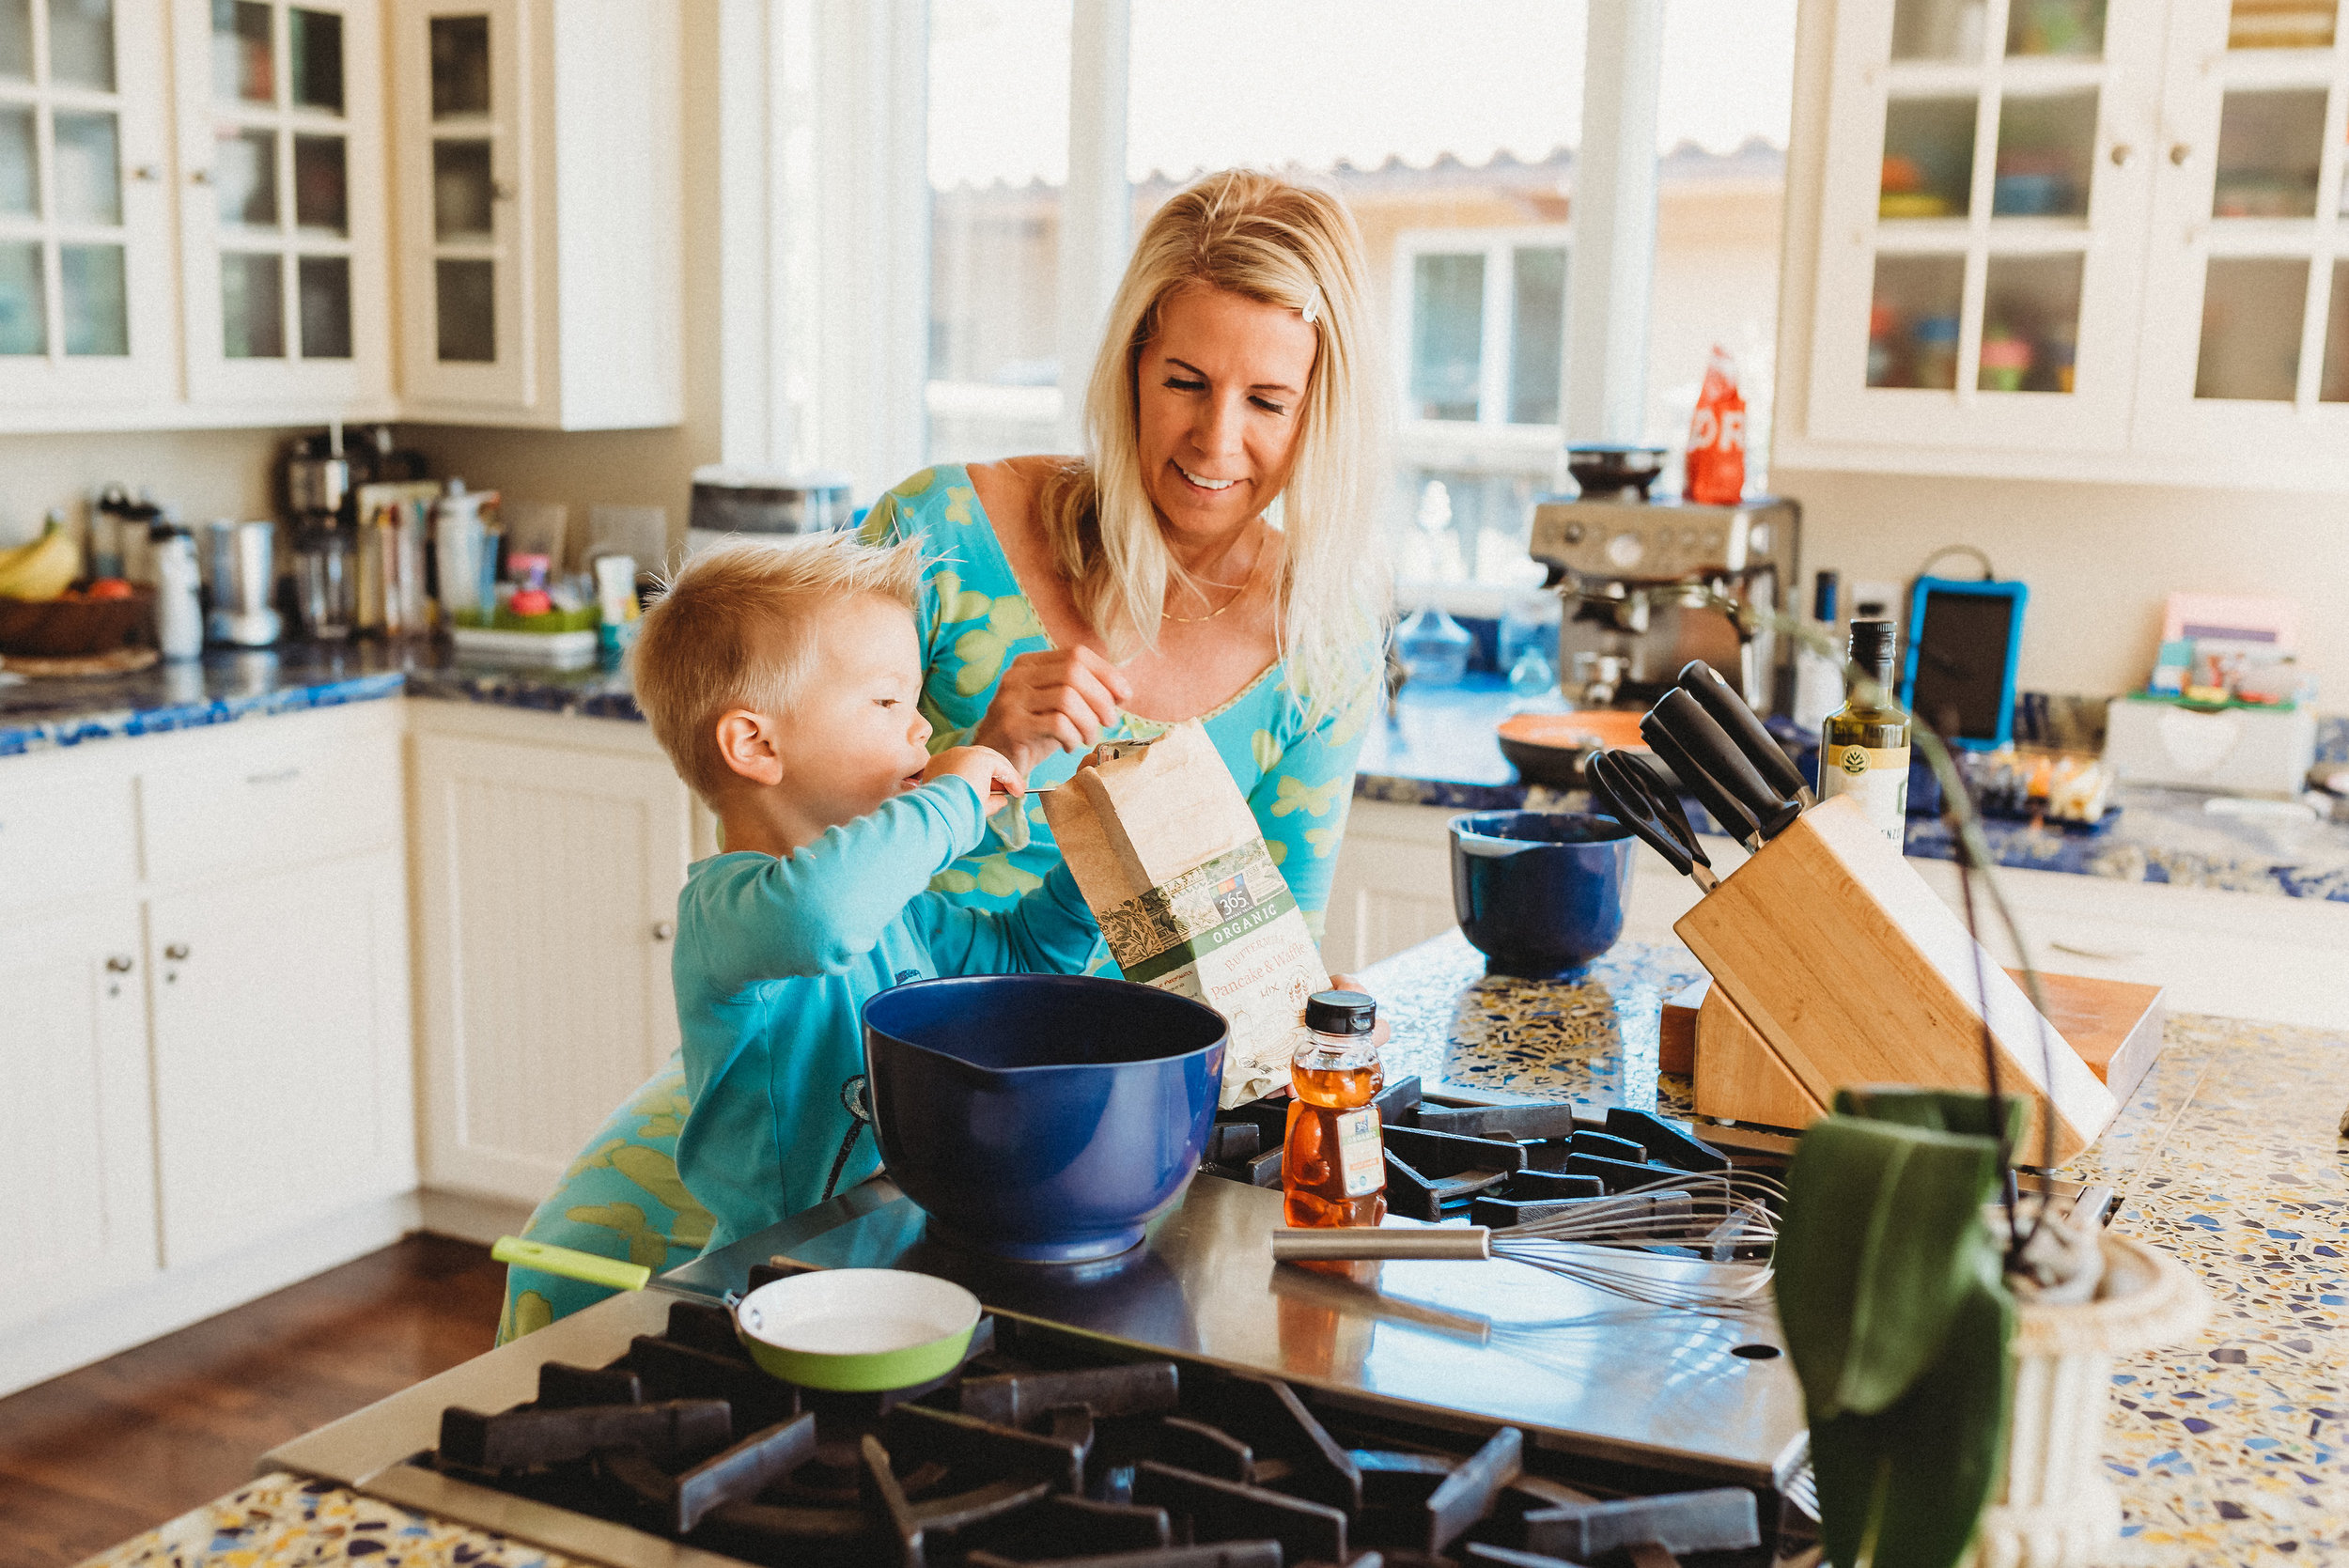 family pancakes morning routine mom of two toddlers pj mornings family time quality time5.jpg